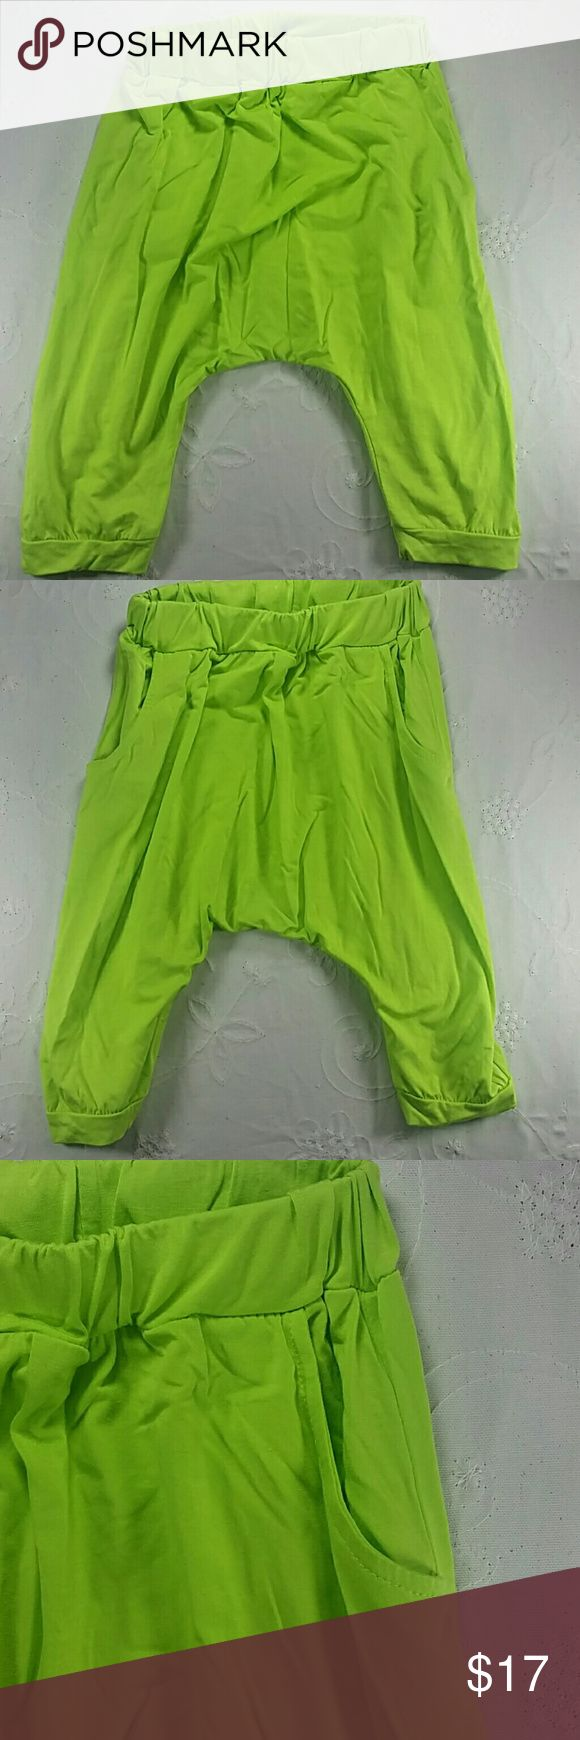 Lime green Harem pants. Kids Adorable and comfortable harem pants in lime green with pockets.  This item is brand new and never used.🎁 with tags.  #14067 Bottoms Sweatpants & Joggers